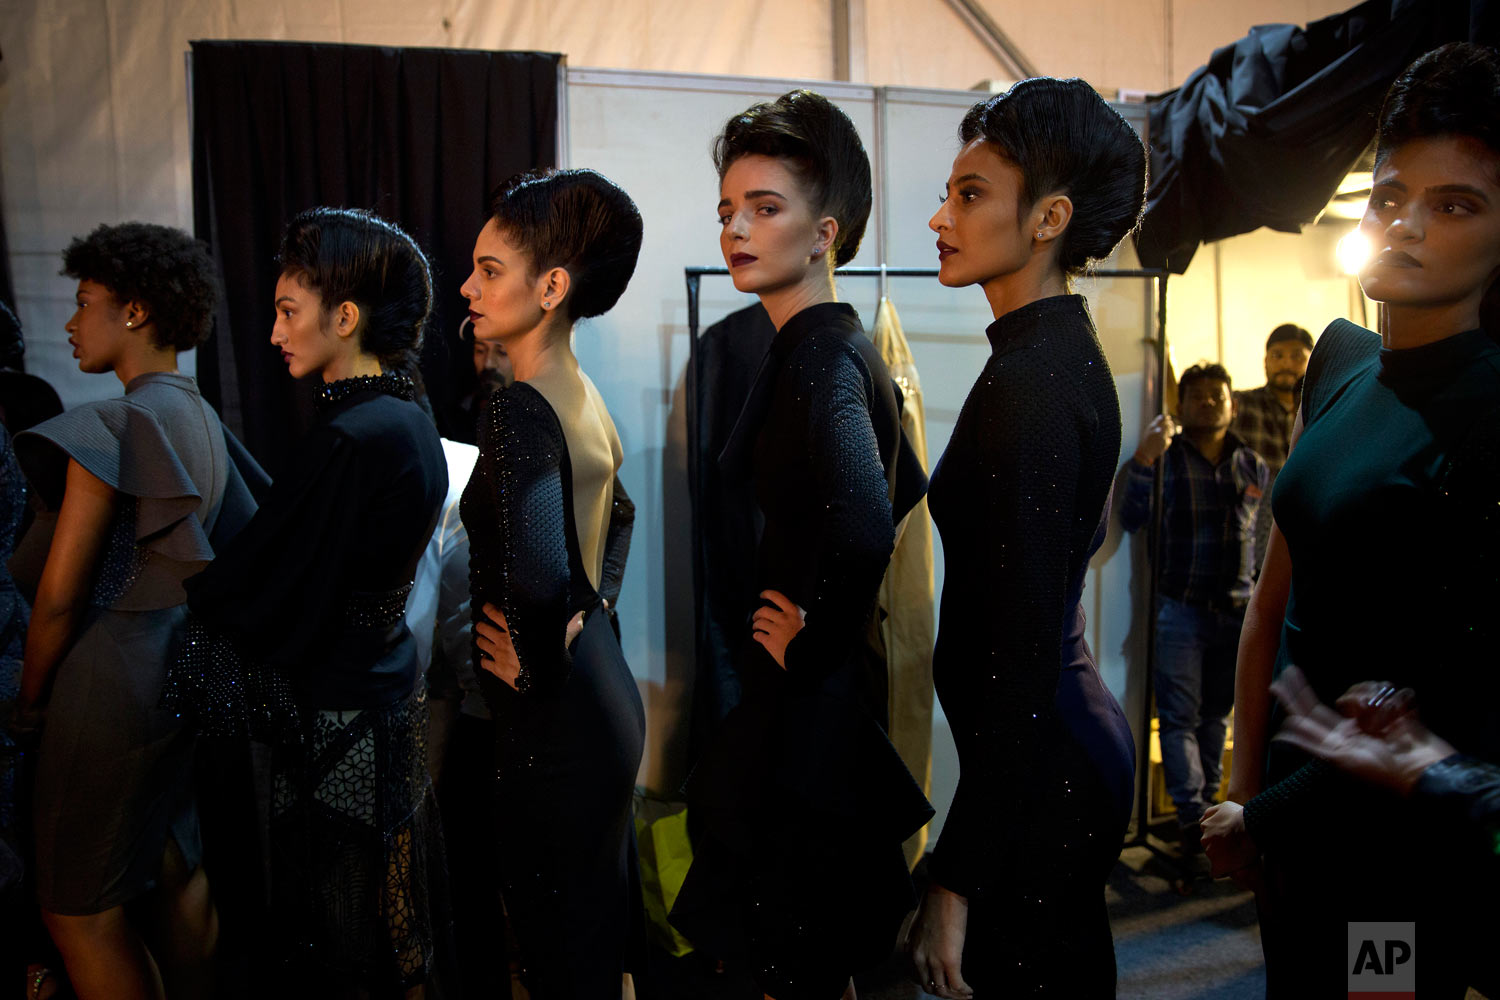 Models line up backstage before the start of a catwalk during the Lotus Makeup India Fashion Week, Saturday, March 16, 2019, in New Delhi, India. (AP Photo/Manish Swarup)